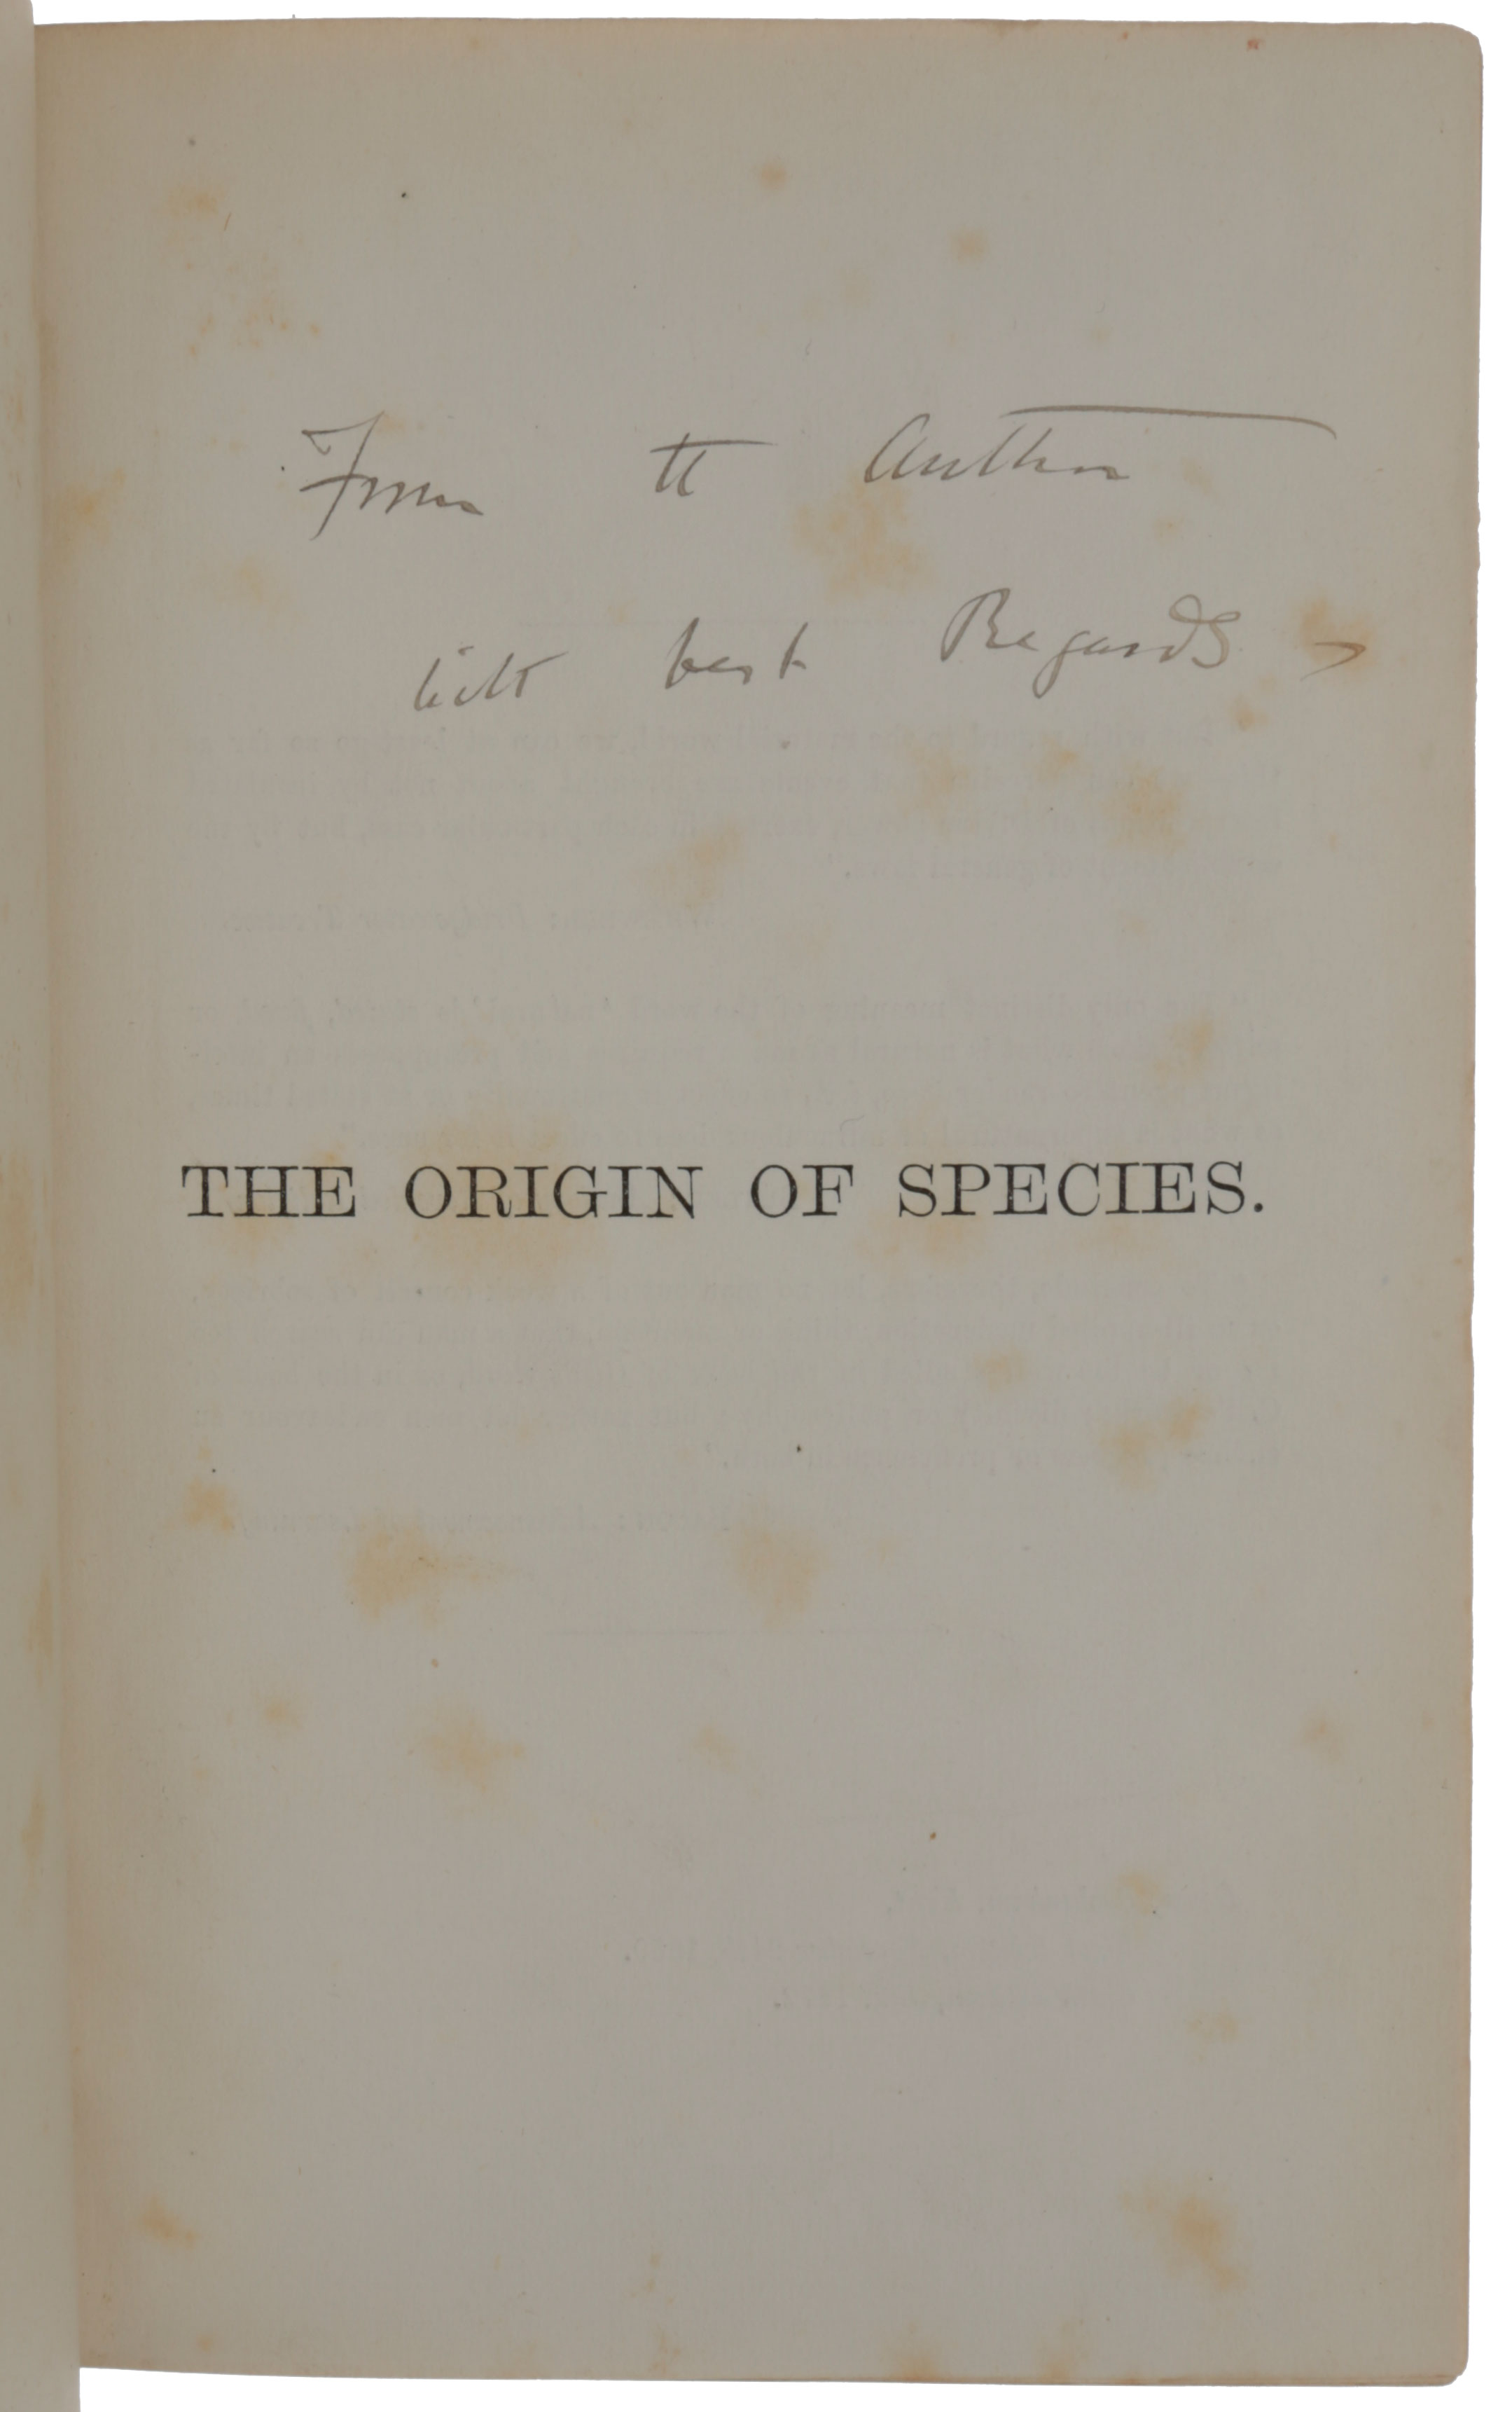 The Origin of Species by Means of Natural Selection, or the Preservation of Favoured Races in the Struggle for Life. Charles DARWIN.